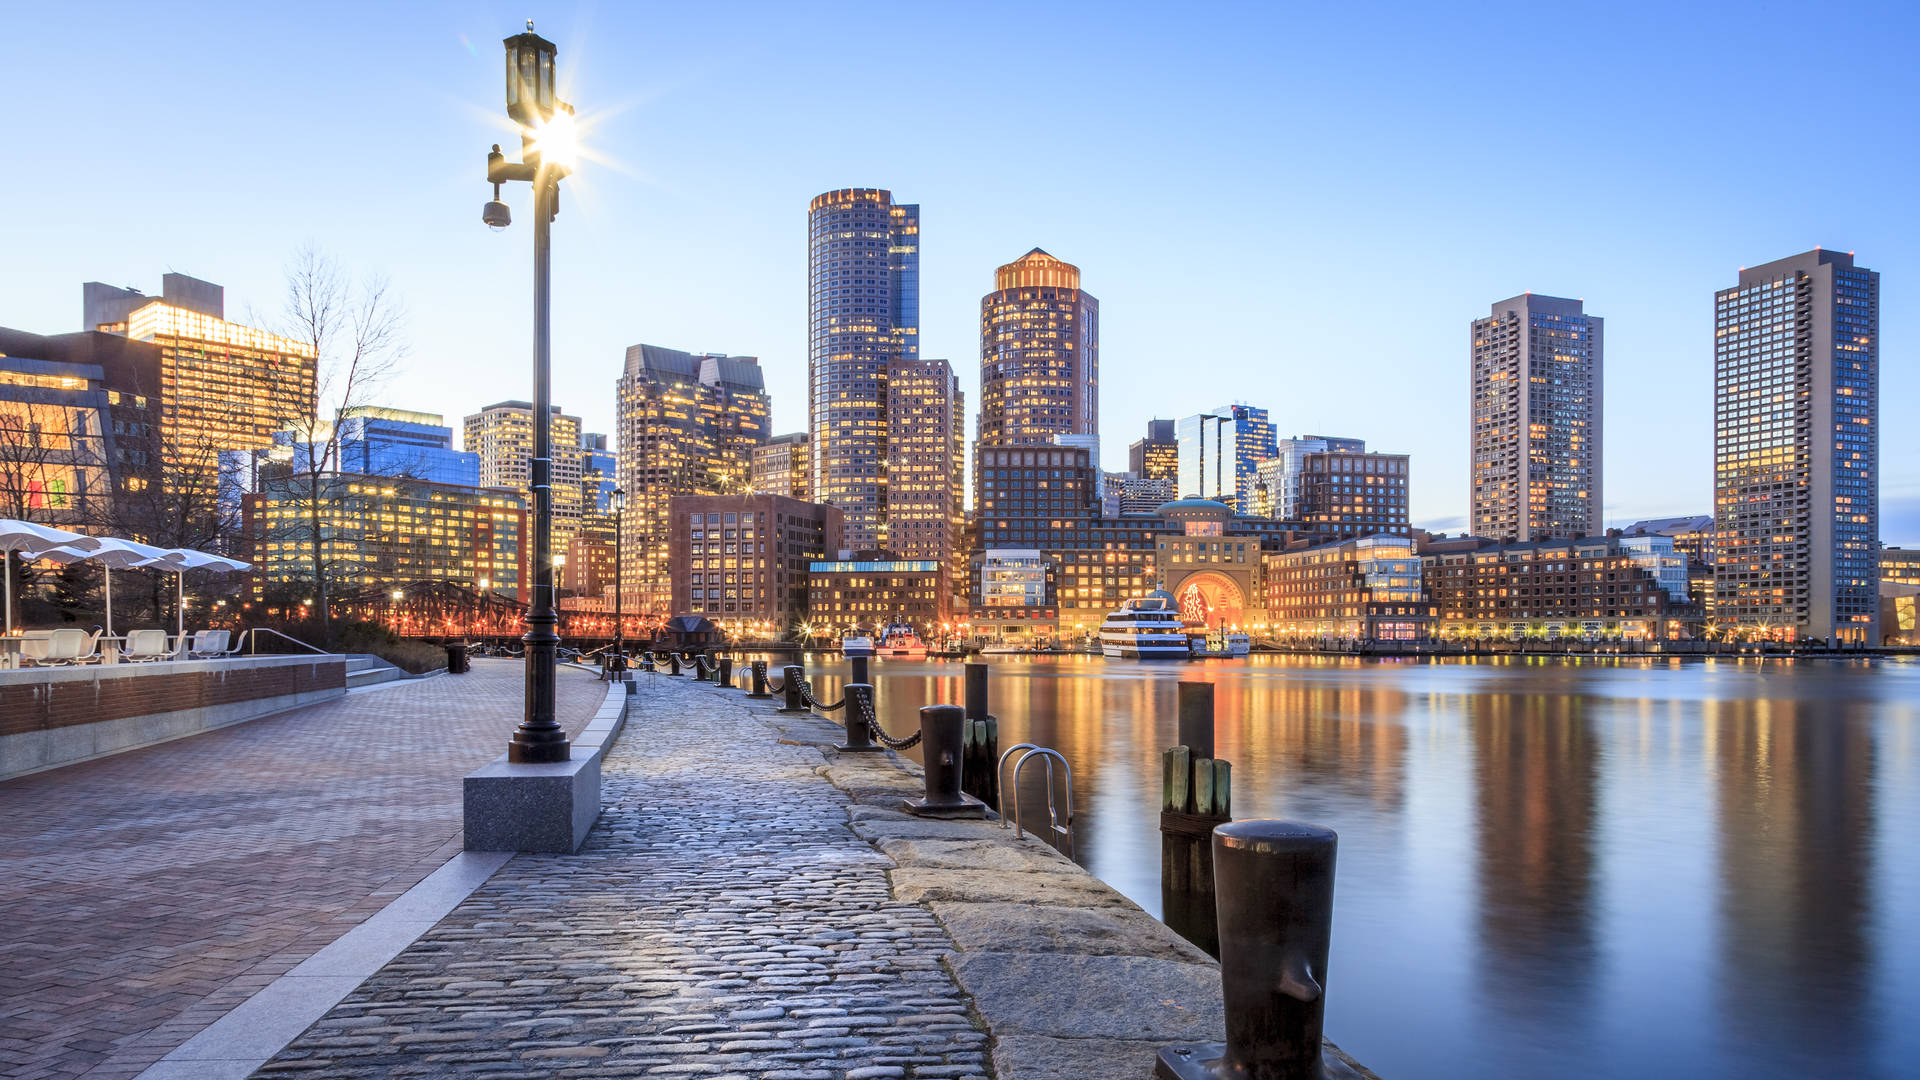 Boston City Image